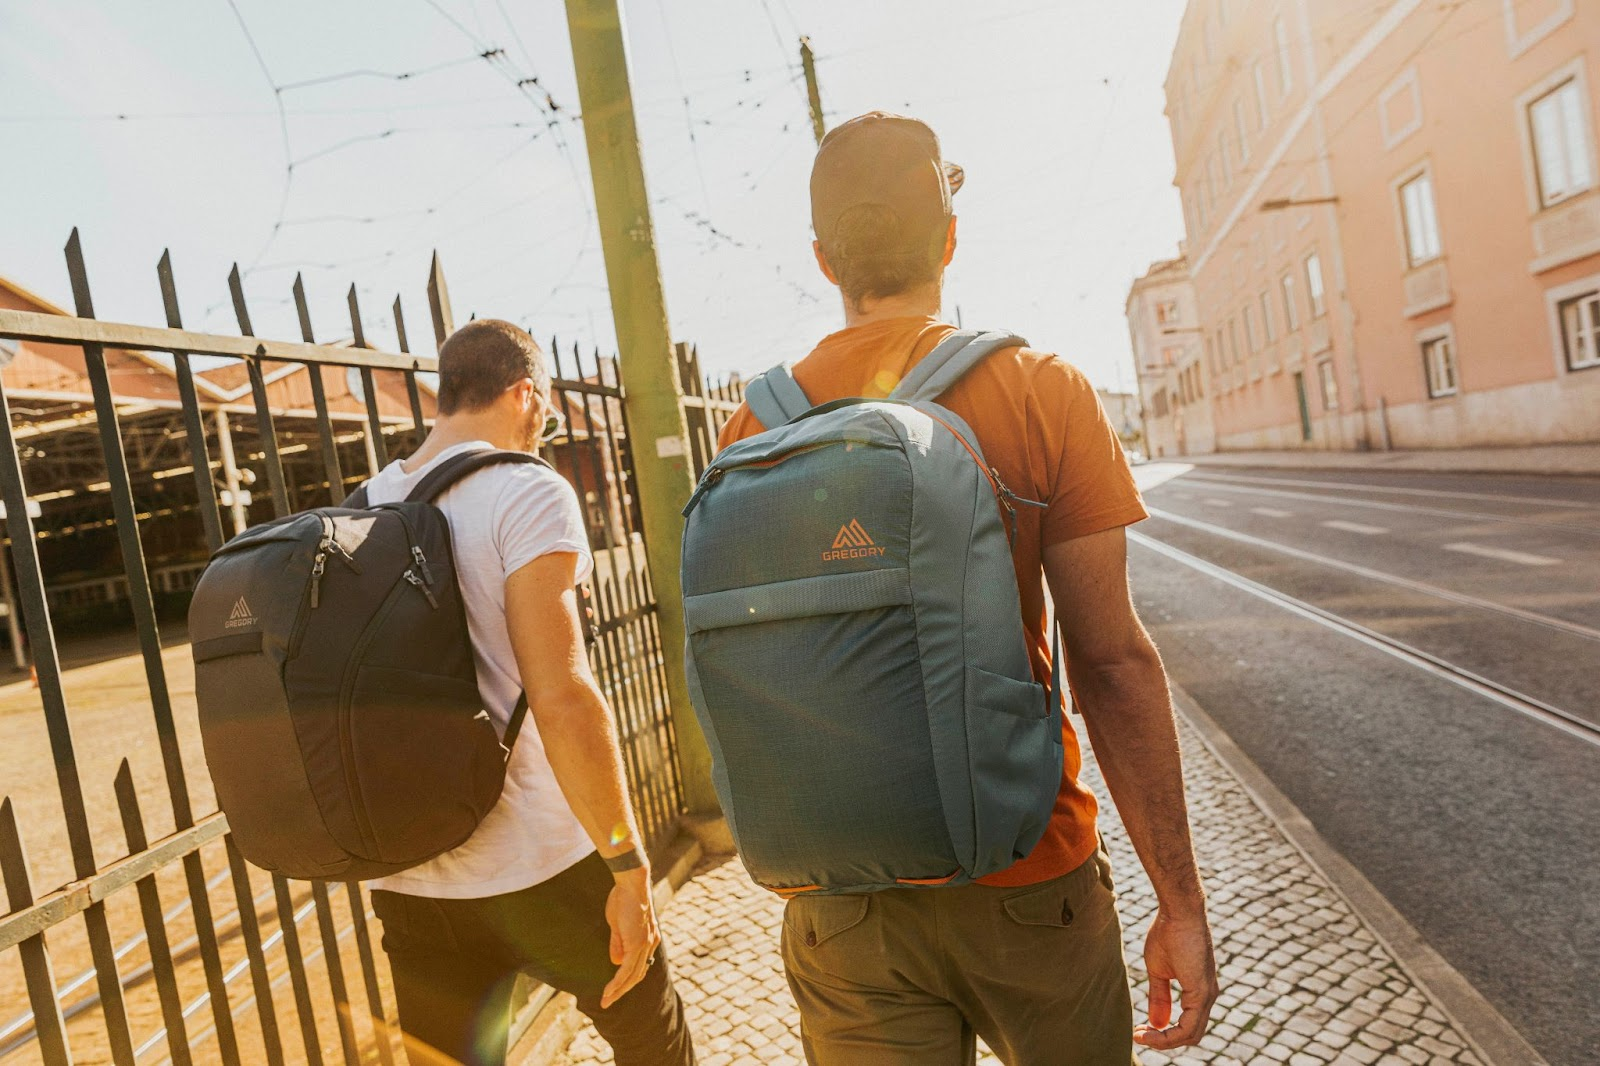 Two men with backpacks walk down a street.